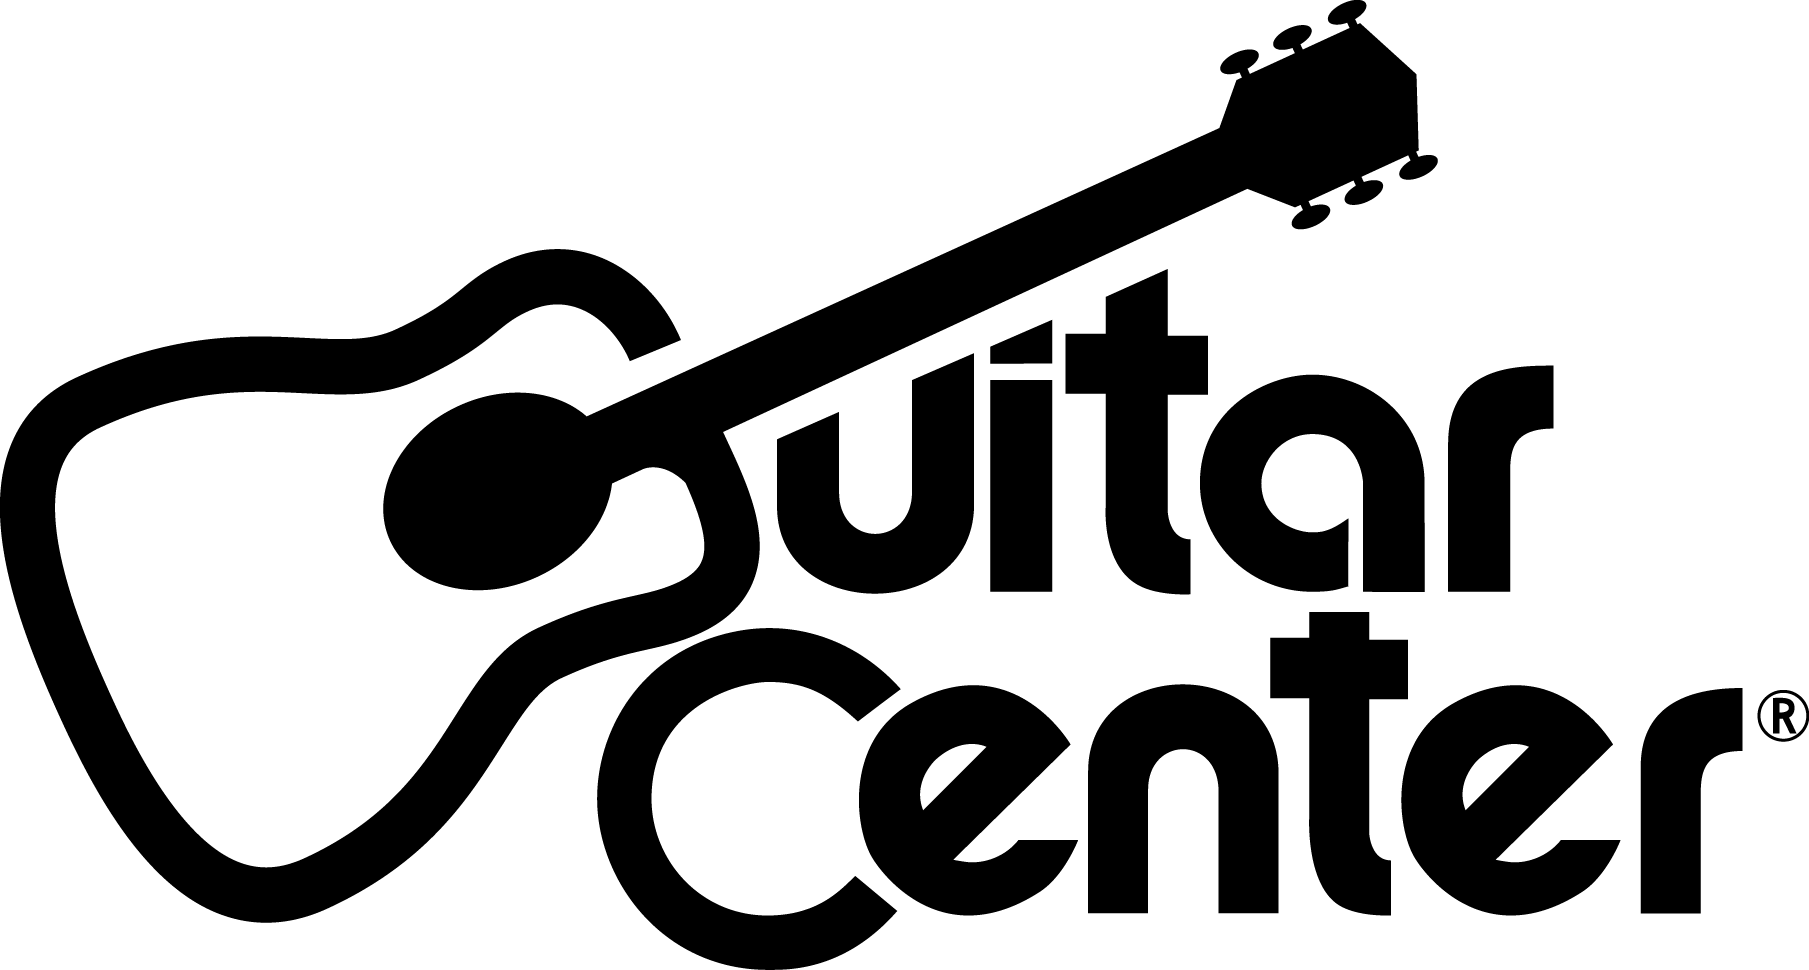 guitar center. Black Bedroom Furniture Sets. Home Design Ideas